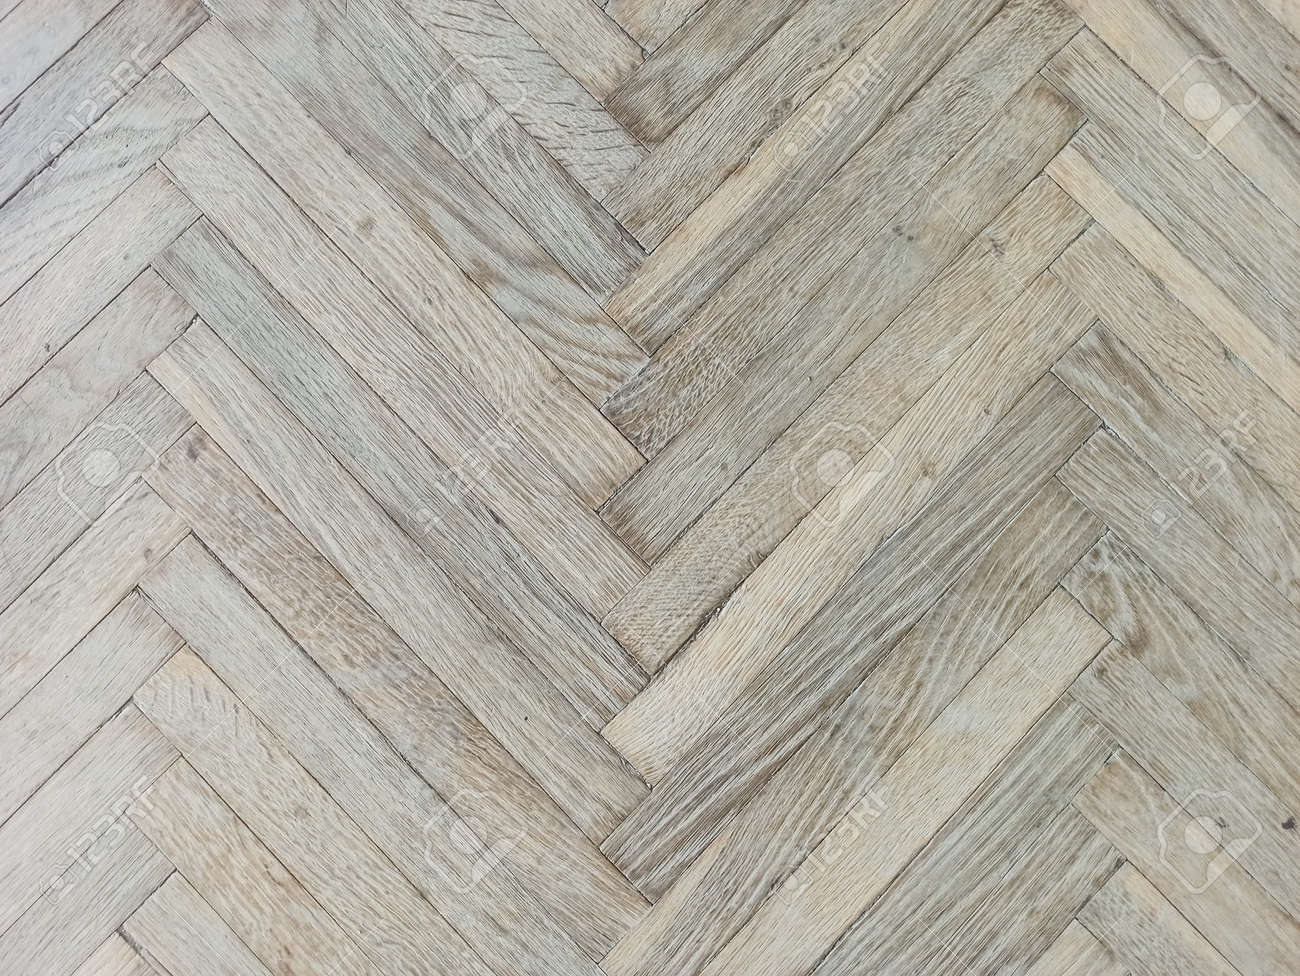 Close up texture of old parquet. Wooden flooring in old building. Plank floor surface. Classic light wood block parquet. - 167090655